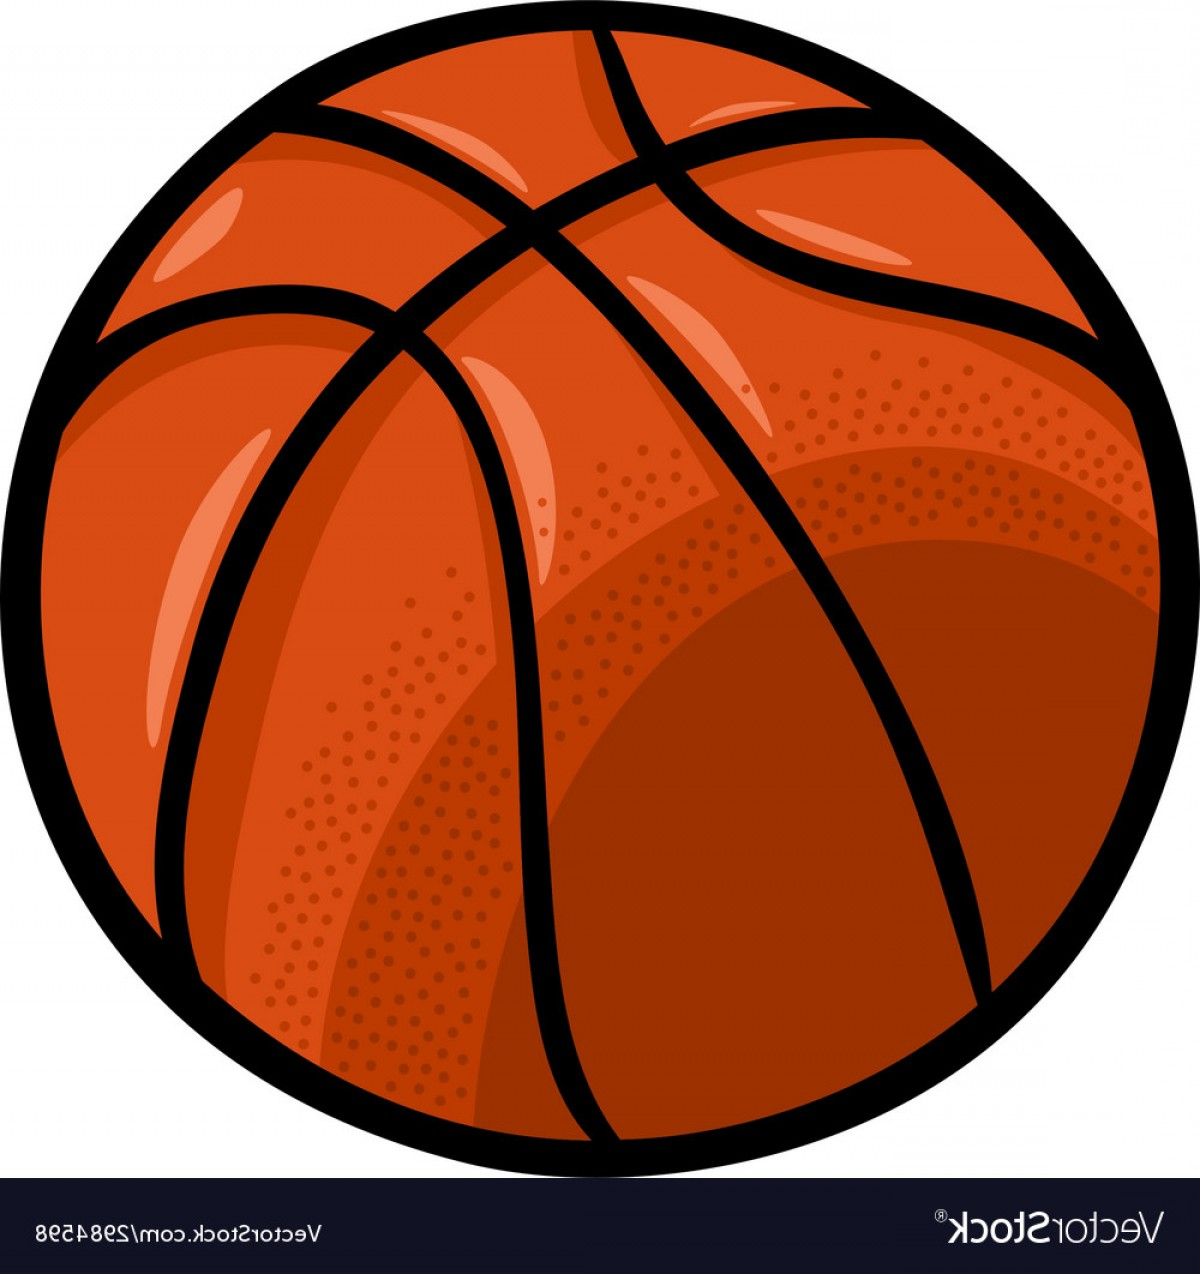 Cartoon Basketball Vector: Basketball Ball Cartoon Clip Art Vector